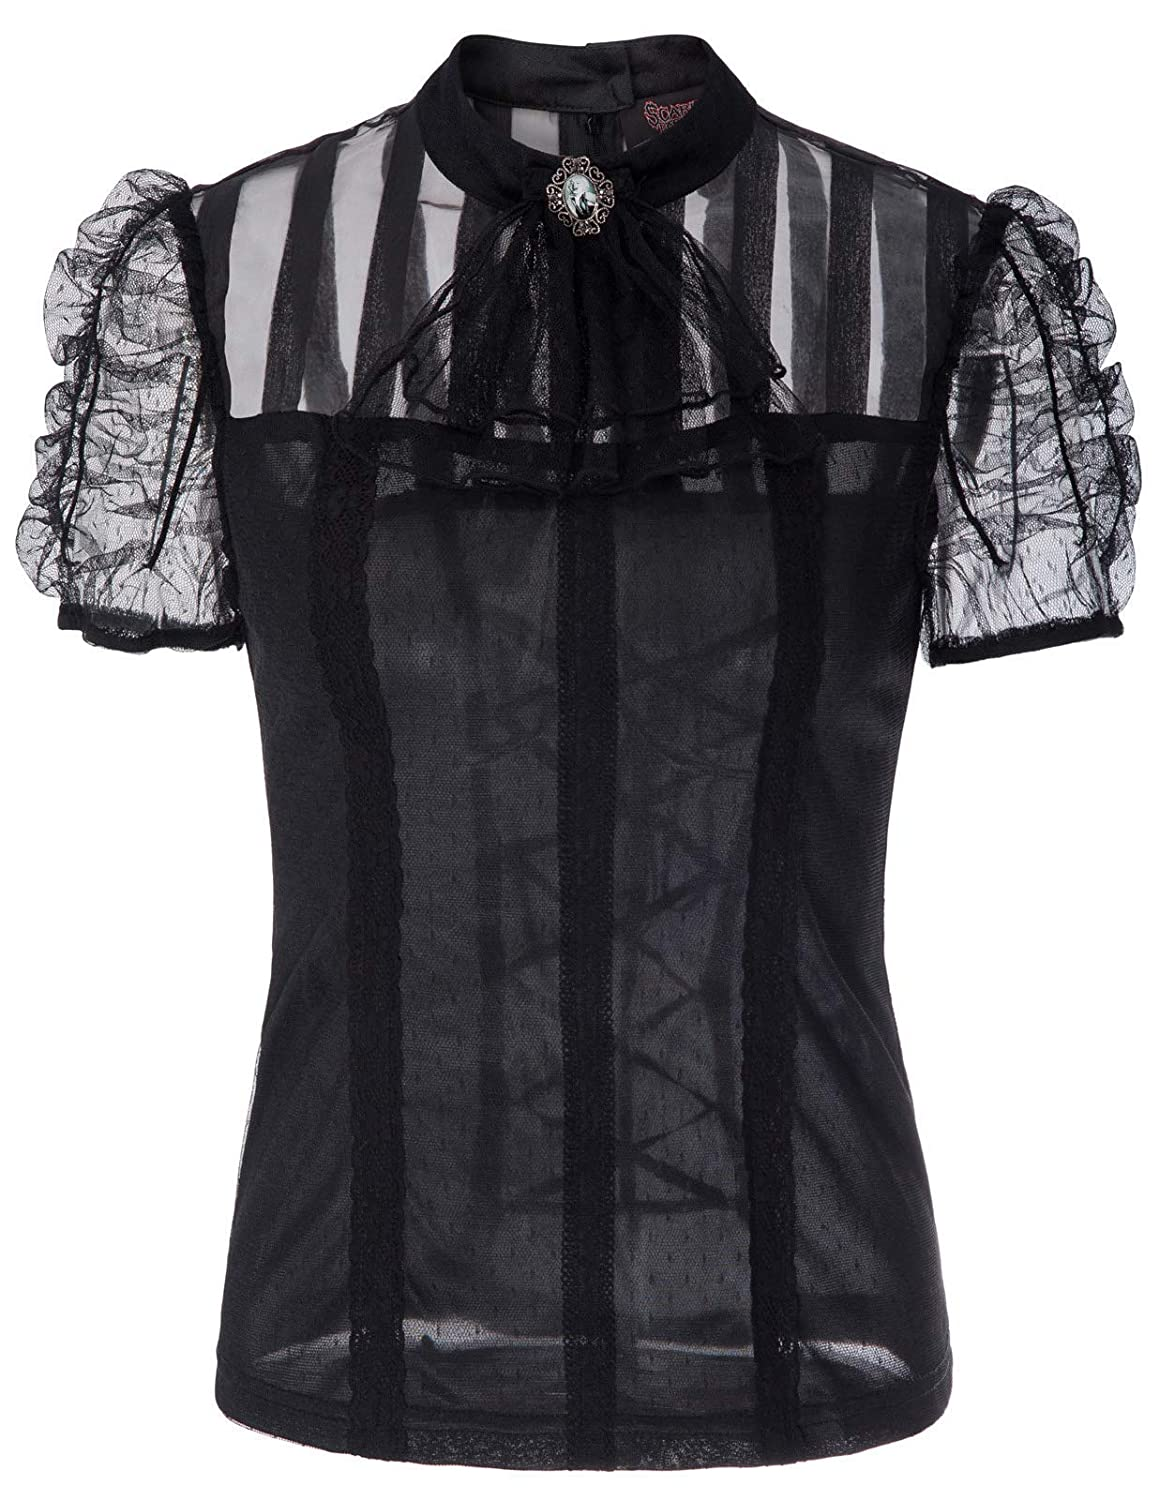 Steampunk Tops | Blouses, Shirts Women Gothic Lace T Shirt Tops Short Sleeve Renaissance Blouse $15.99 AT vintagedancer.com